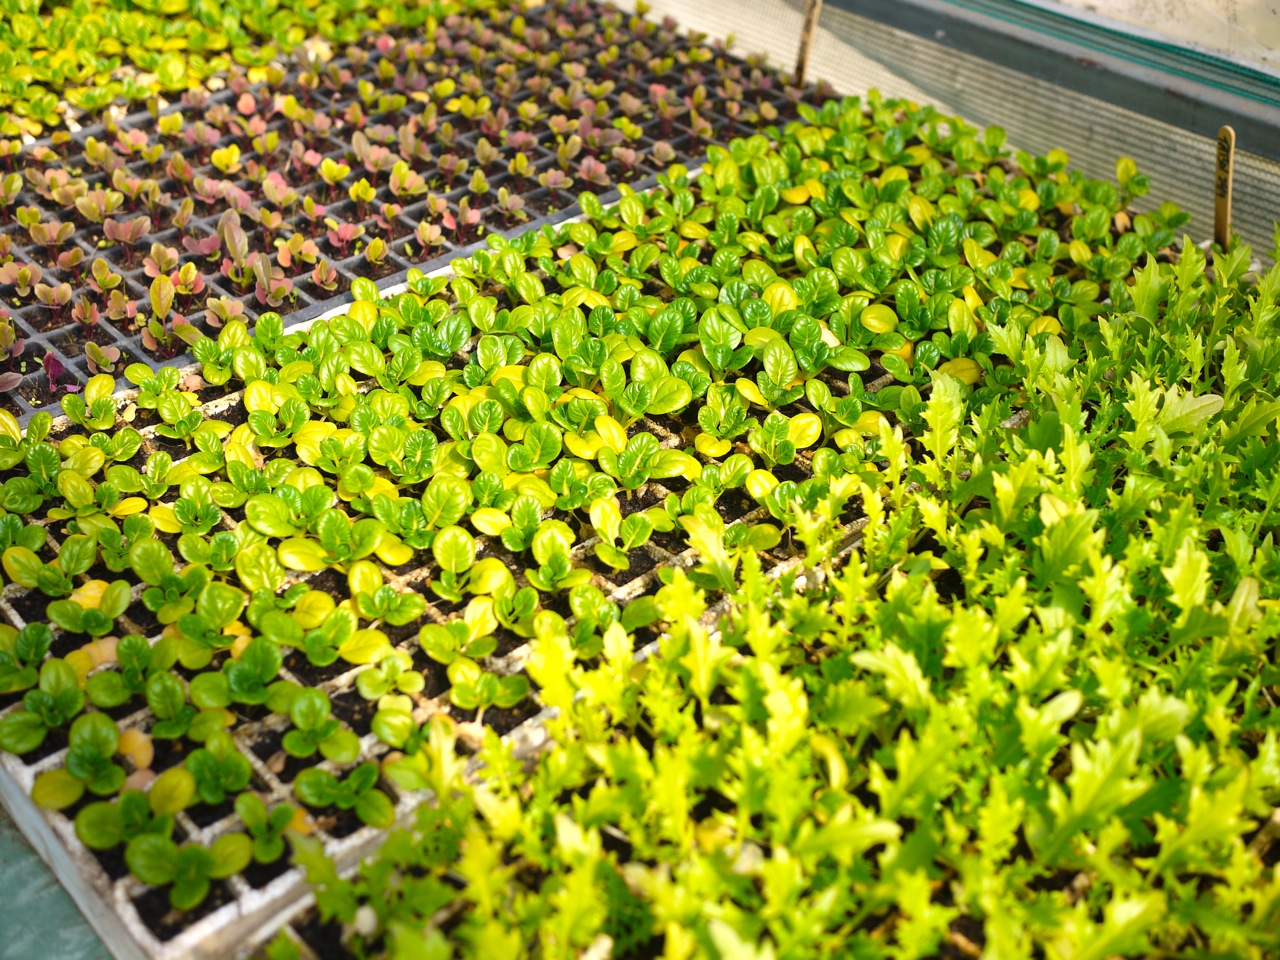 1309 seedlings - 6